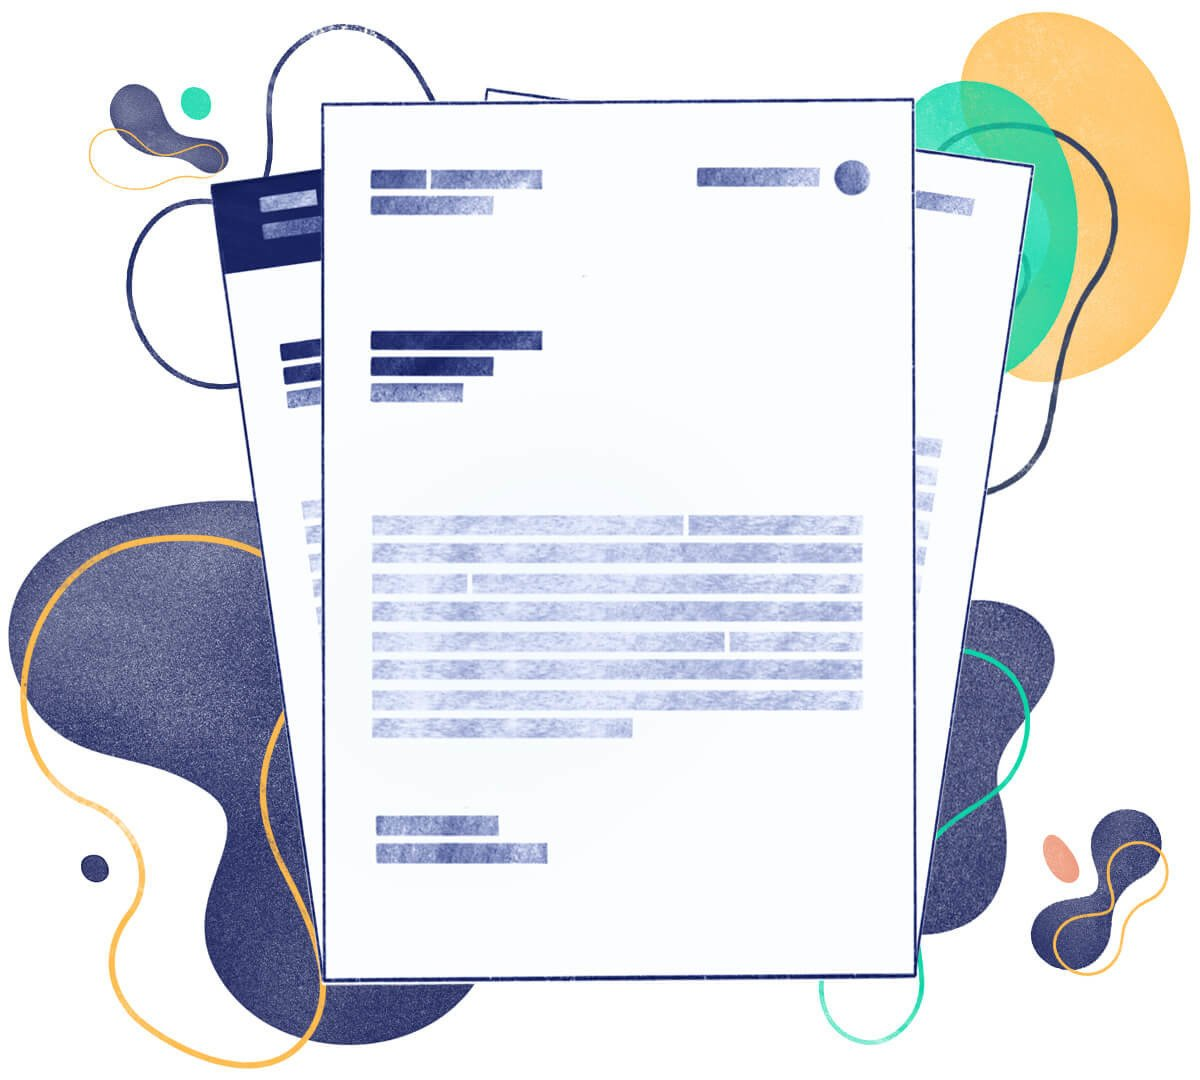 What Is a Cover Letter For a Job / CV & What Is Its Purpose?